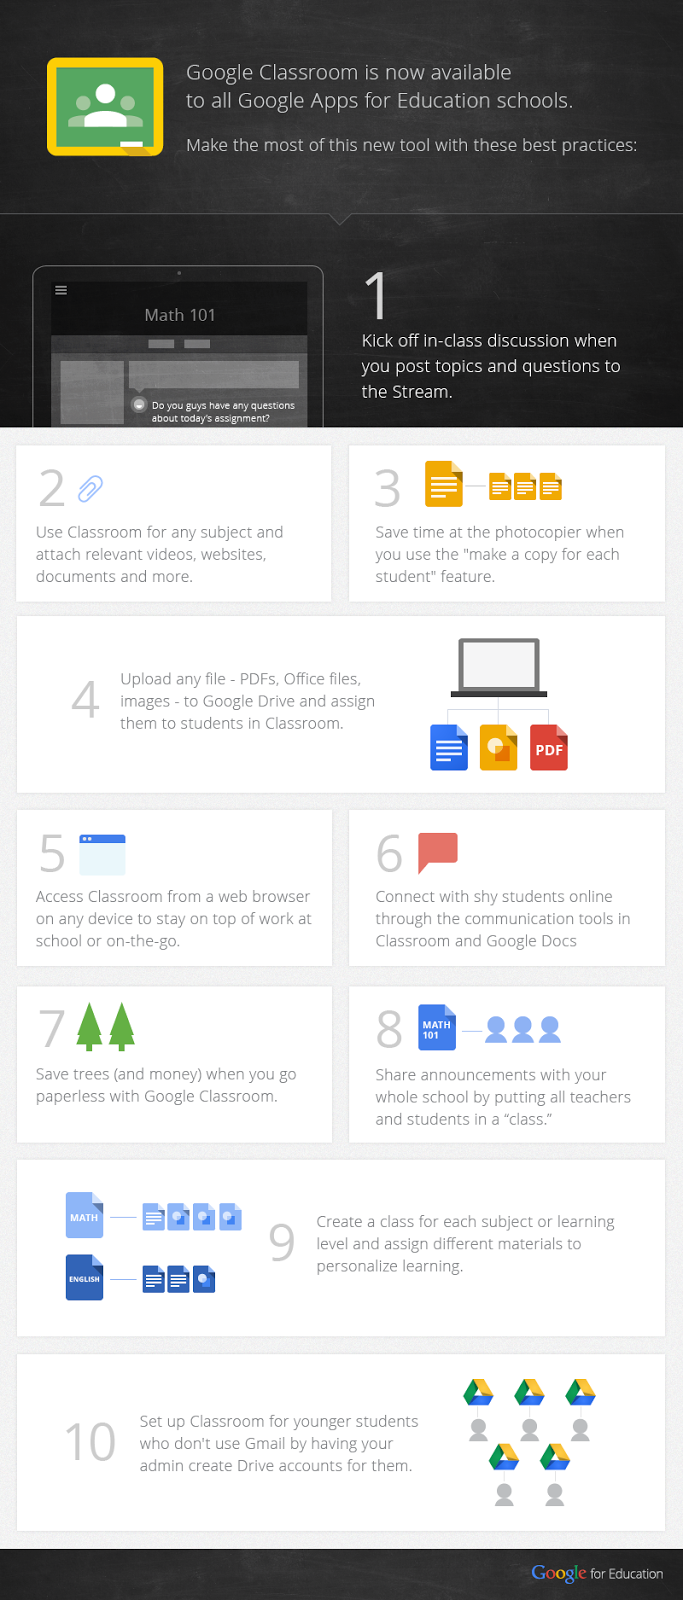 New Poster Featuring 10 Google Classroom Best Practices